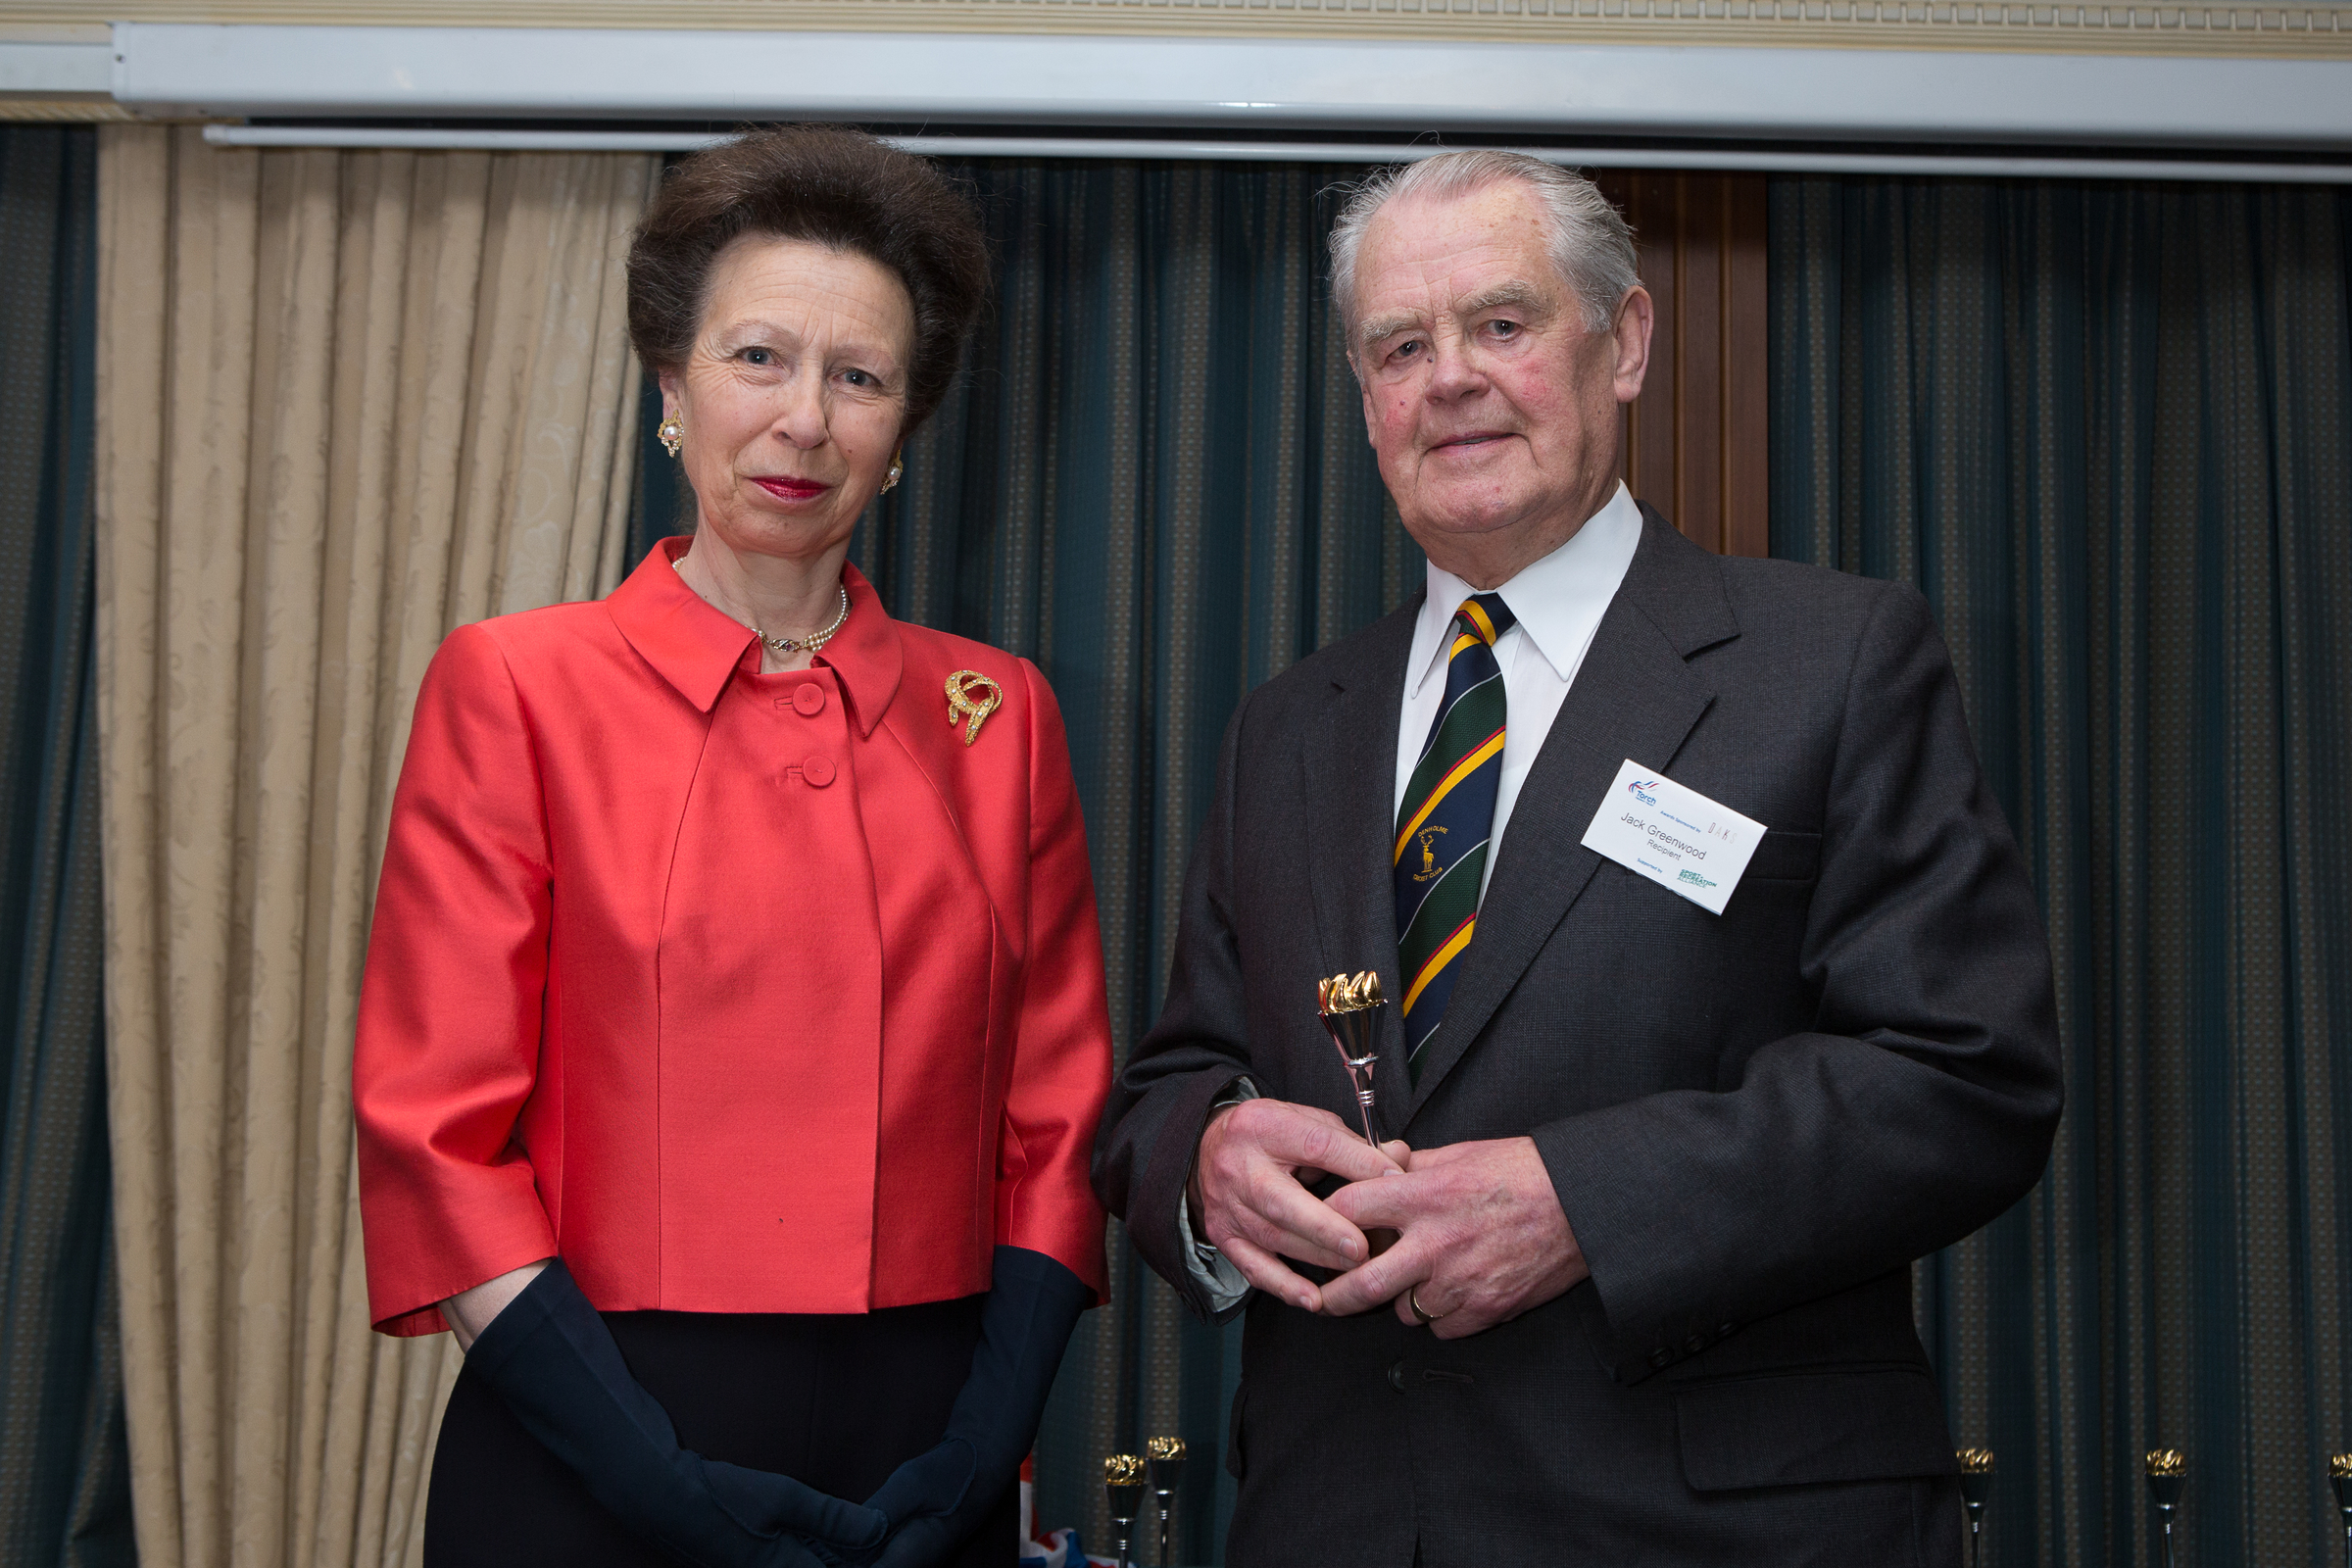 Denholme Cricket Club's Jack Greenwood receives his Torch Trophy Trust award from HRH The Princess Royal